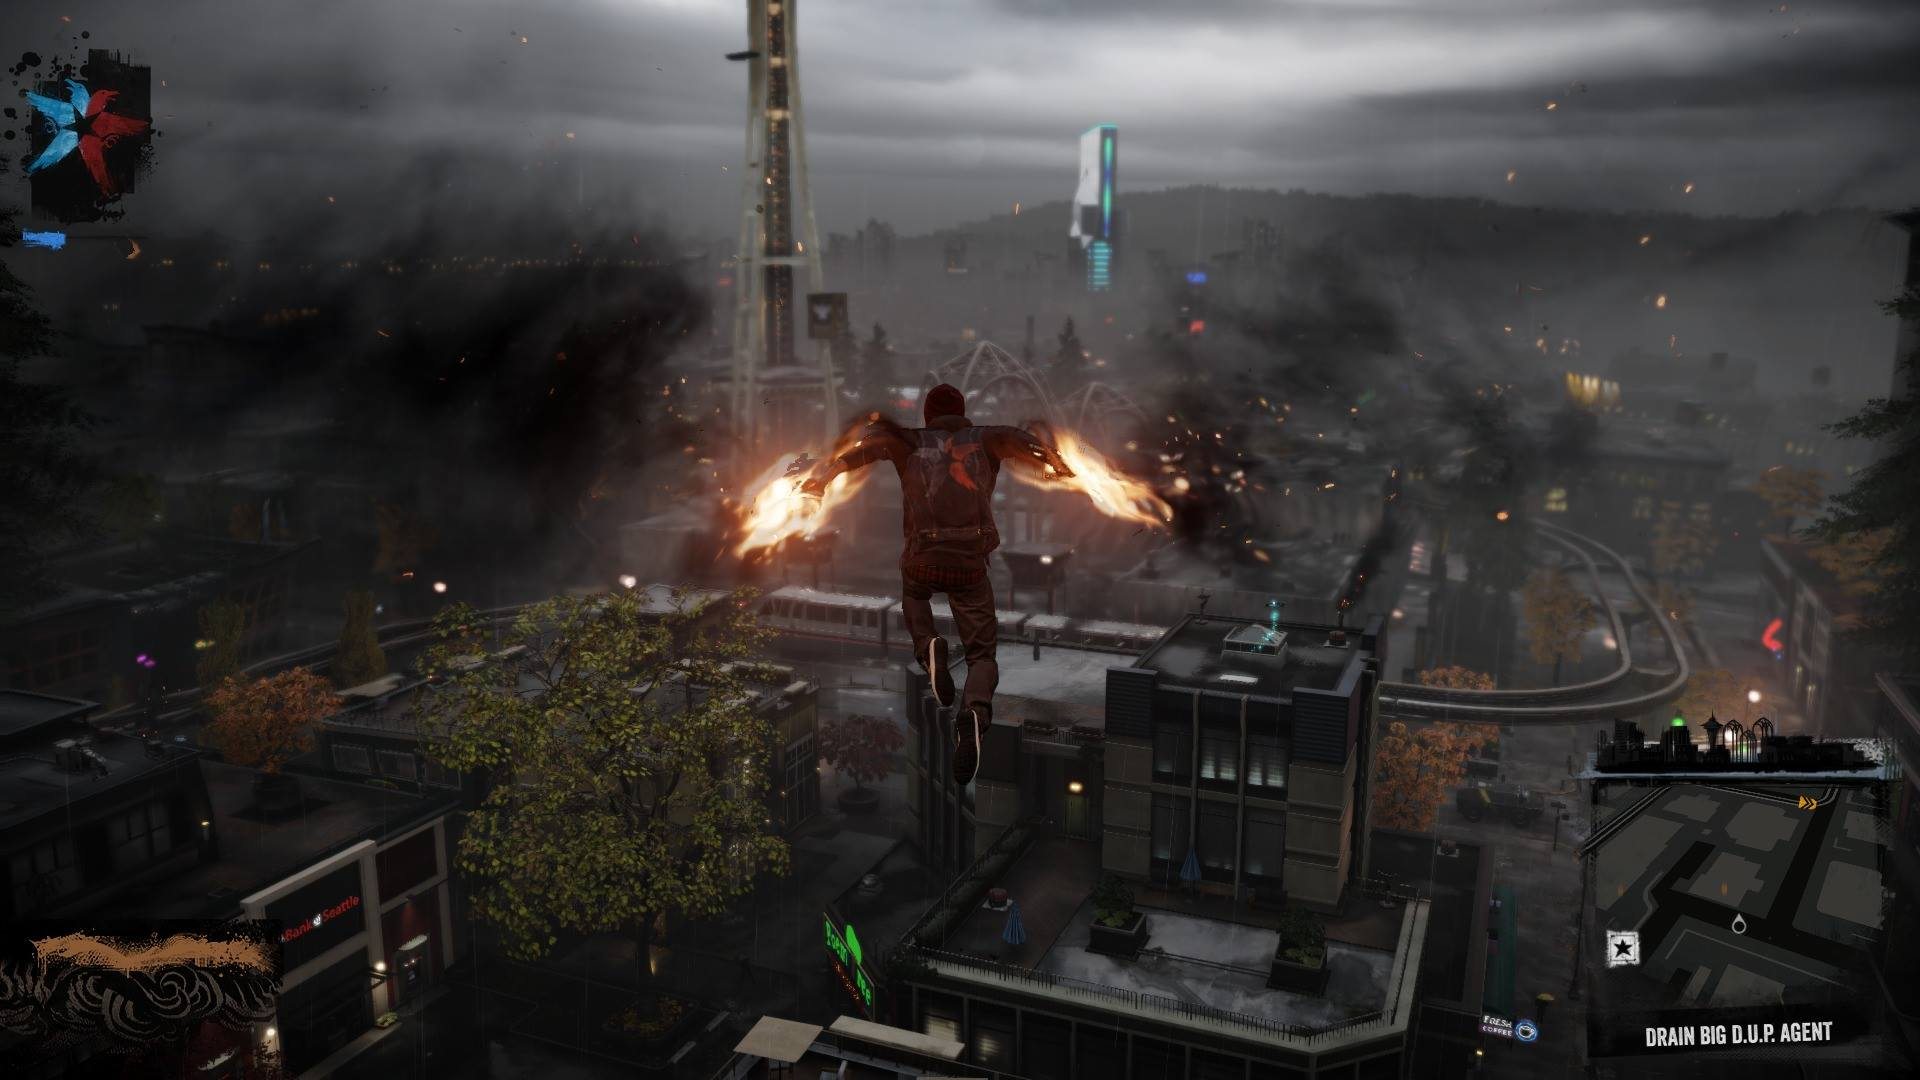 infamous-second-son-image-1_1.jpg